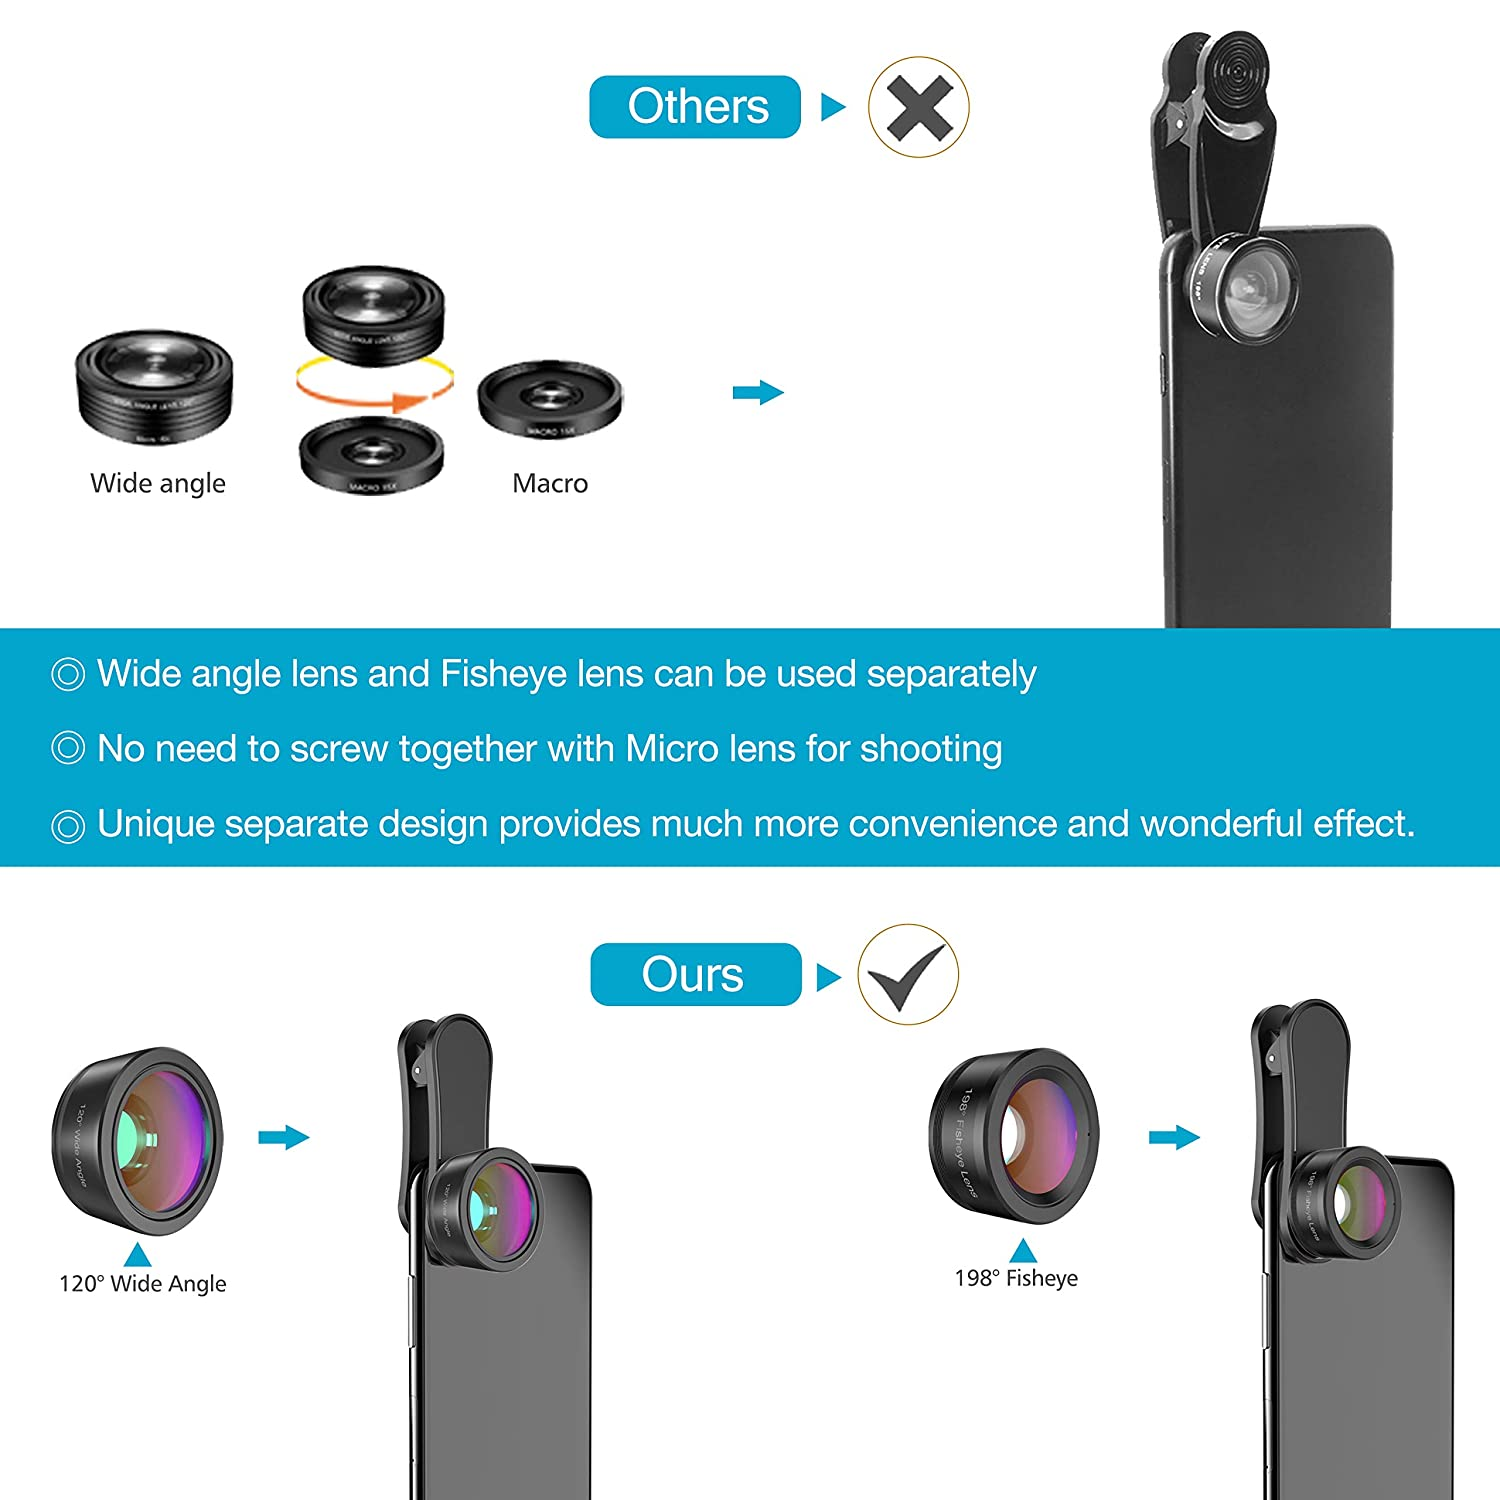 Phone Camera Lens,7 in 1 Cell Phone Lens Kit 120/°Wide Angle Lens,Macro Lens,198/°Fisheye Lens,Starburst Lens,2X telephoto,CPL,6 Kaleidoscope,Clip-On Compatible iPhone Samsung and Most Smartphone